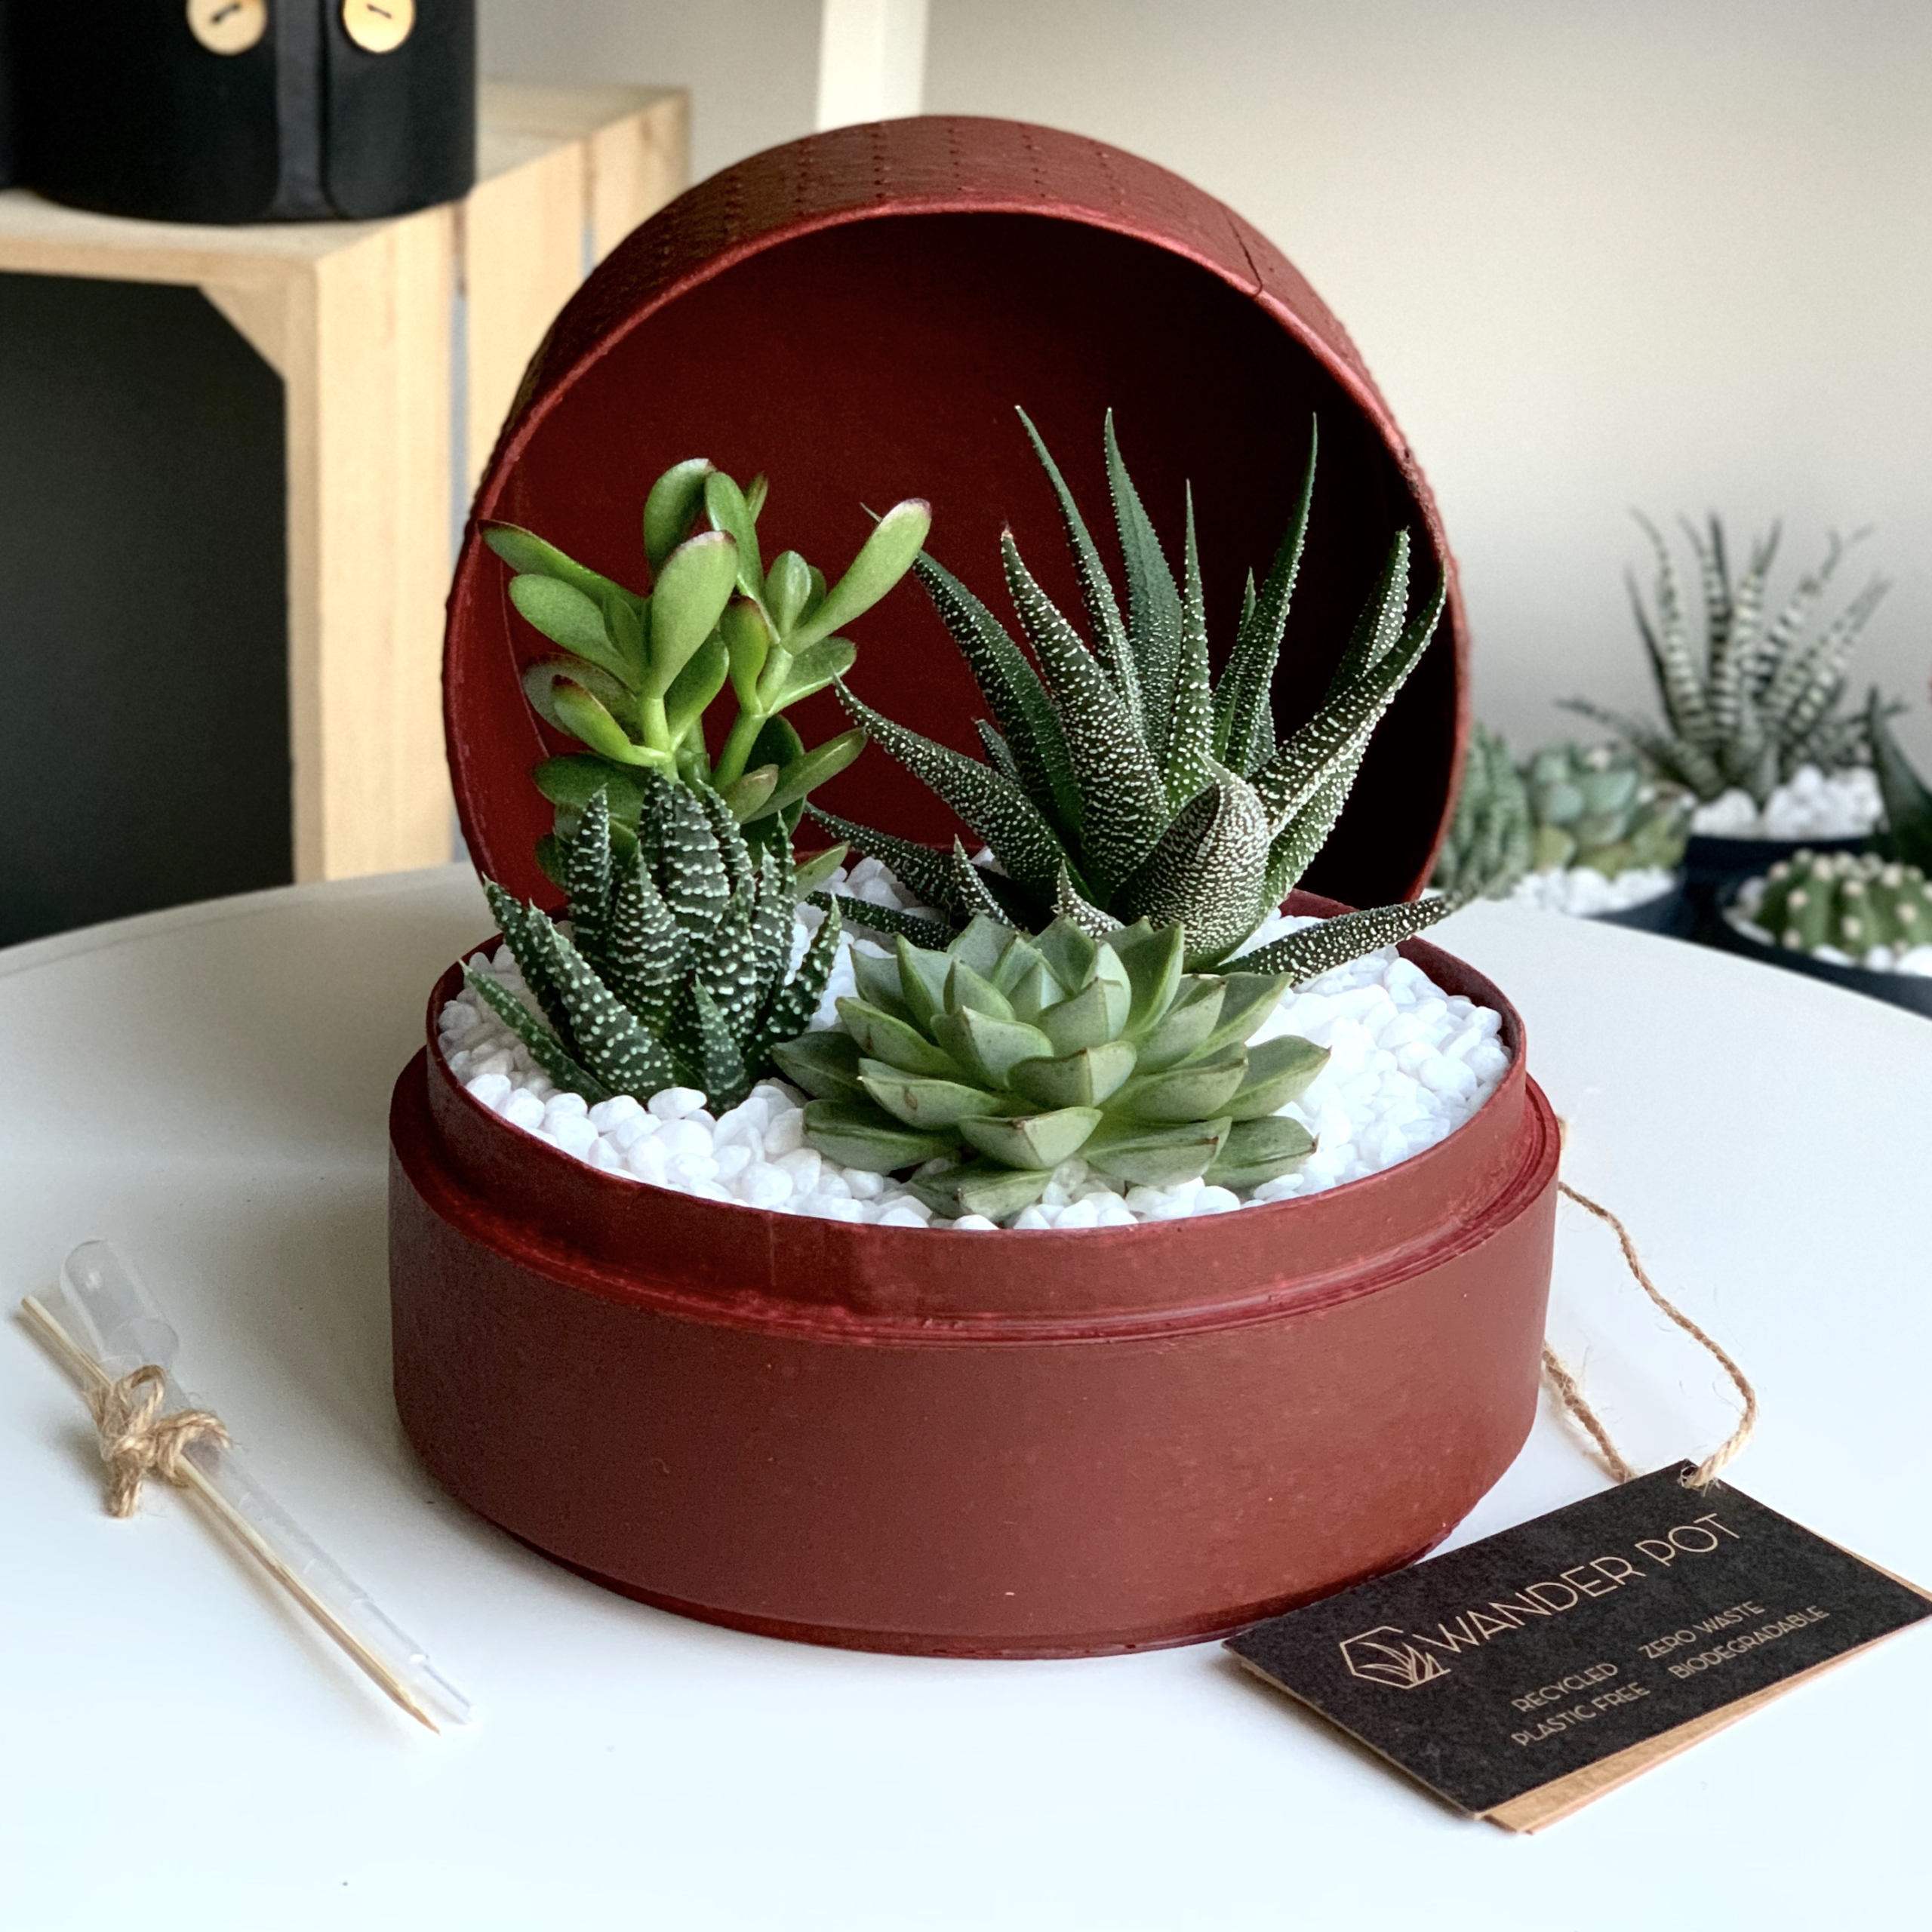 Succulent mix in a red handmade pot. Biodegradable and recycled pot. Long-lasting and gorgeous sustainable plant gift.